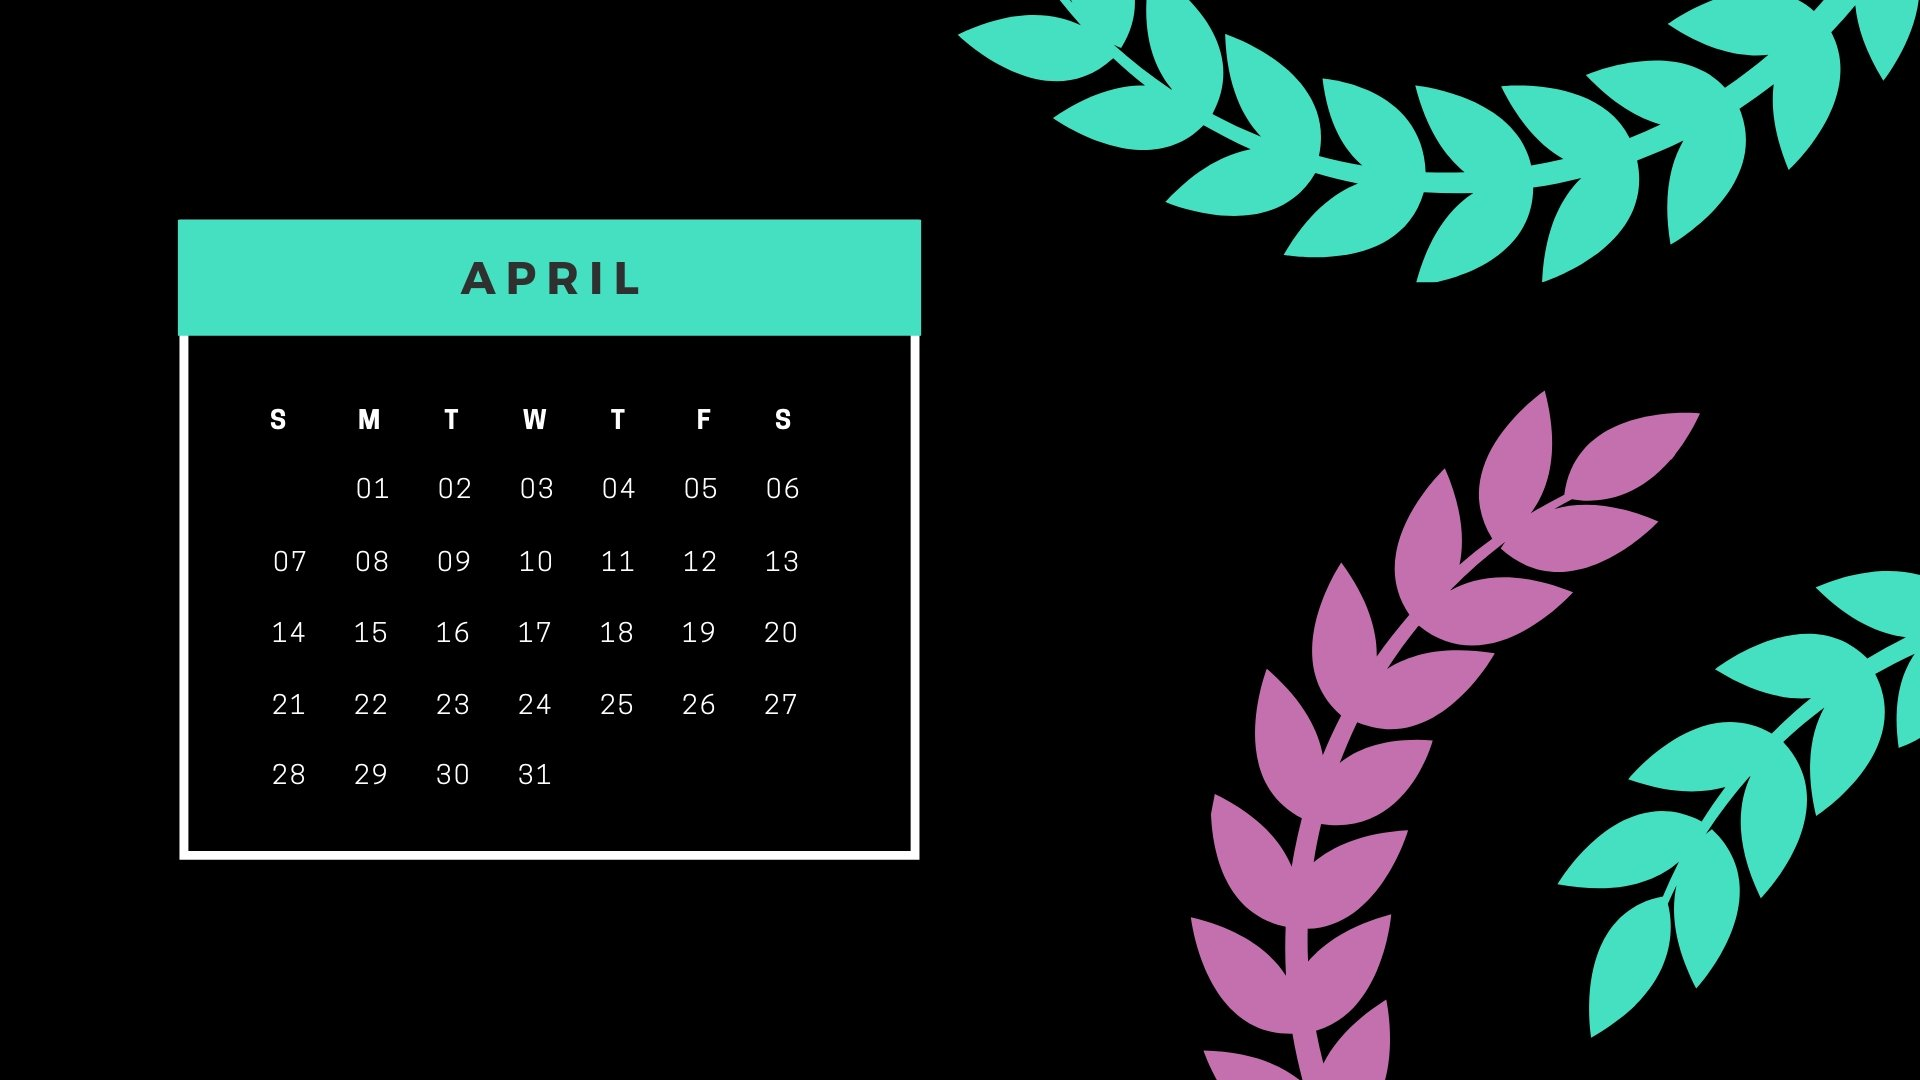 April 2019 PC Calendar Wallpaper